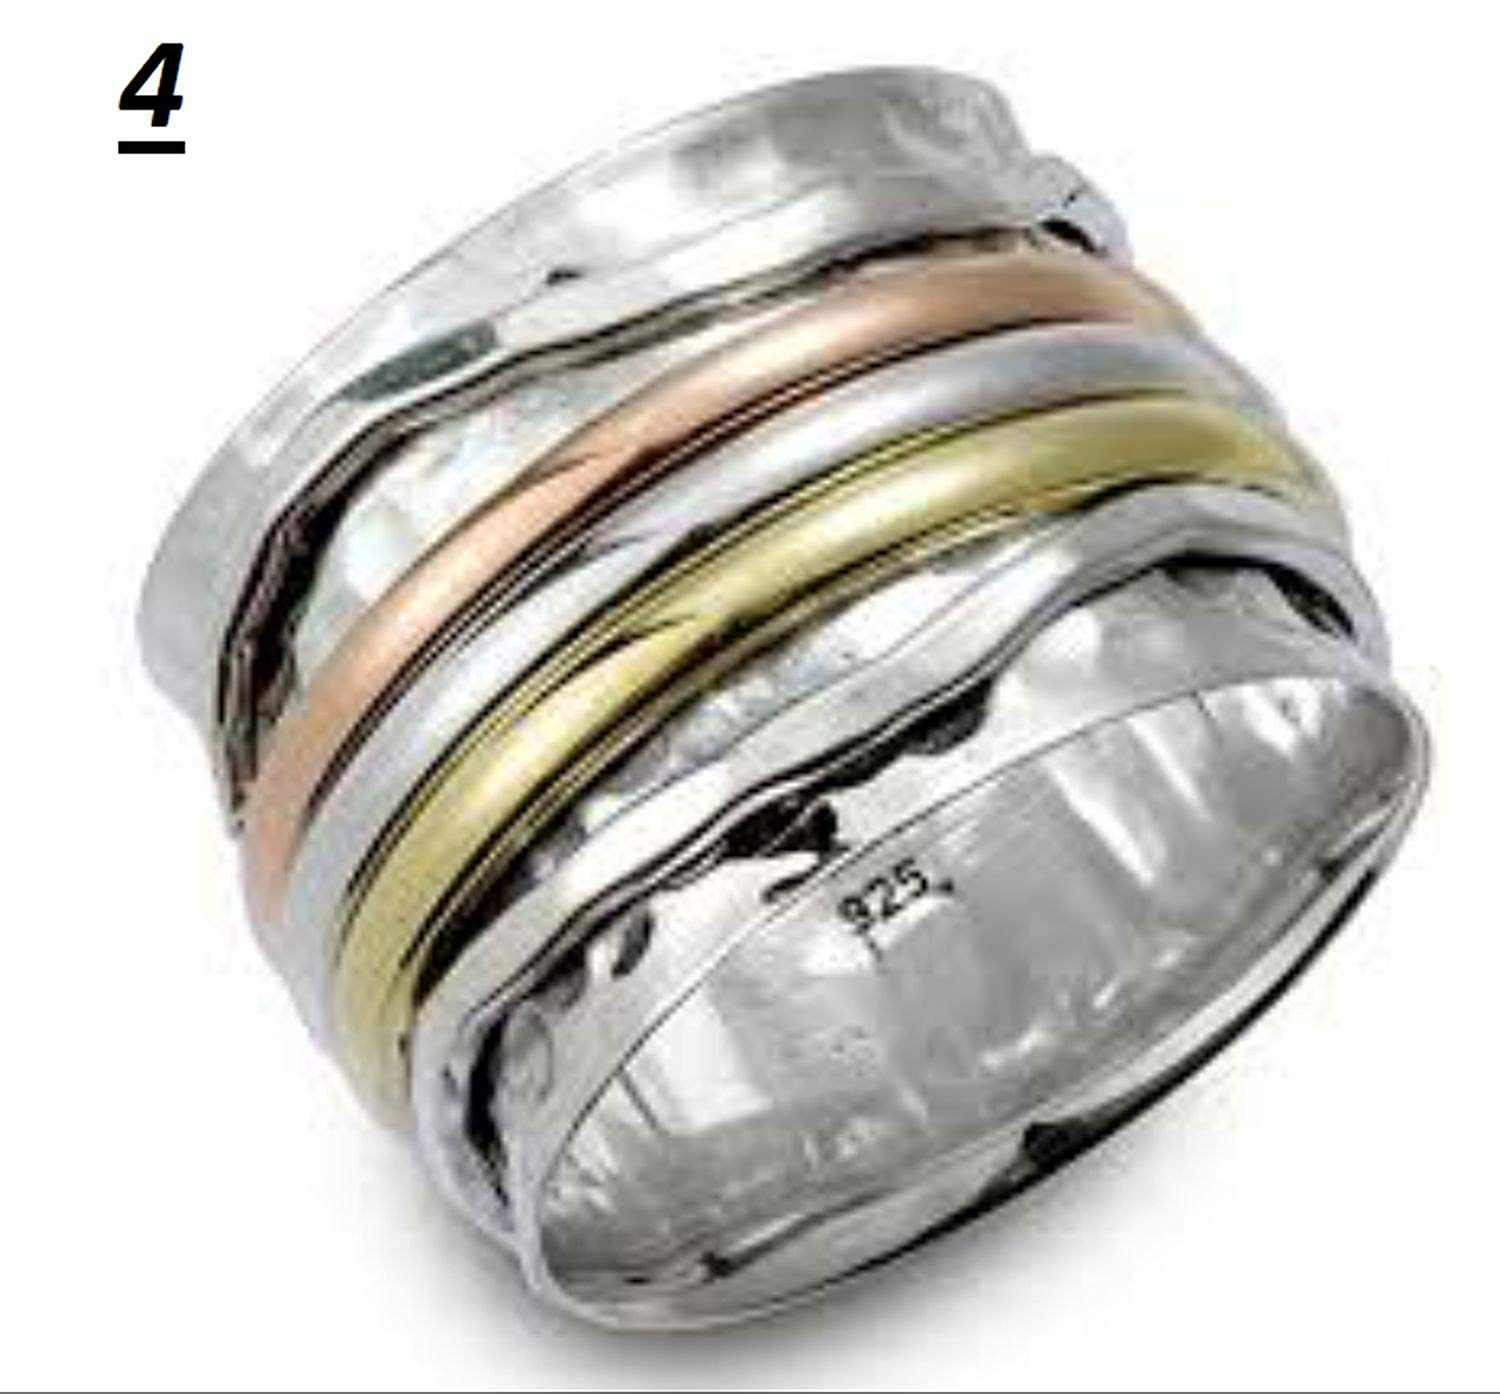 JewelsExporter Spinner Ring,Sterling Silver mm Ring,All Sterling Silver, Chunky Silver Thumb Ring, Unisex Silver Thumb Ring, Stress Ring 12US